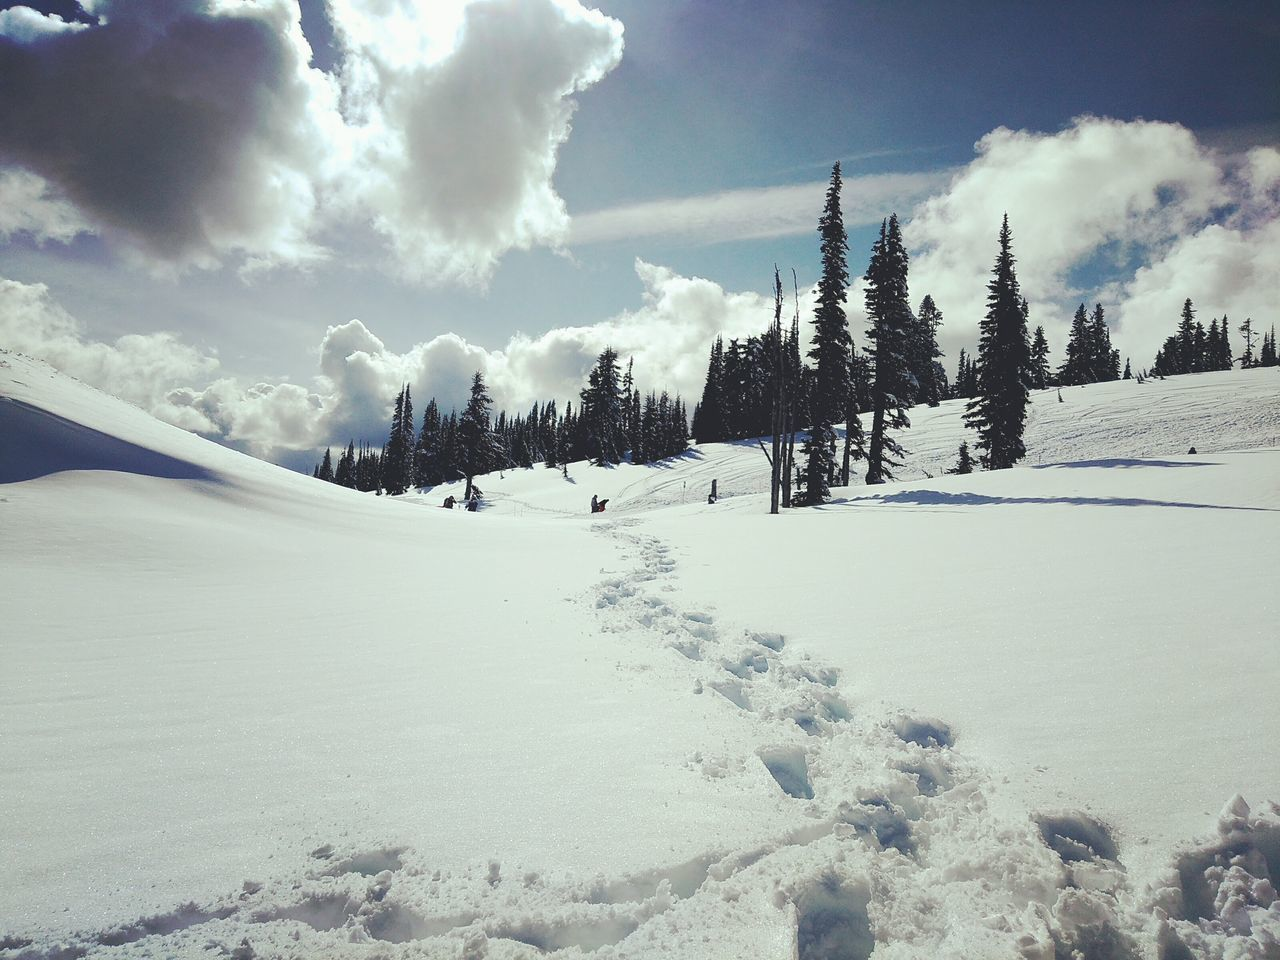 snow, winter, cold temperature, sky, cloud - sky, nature, weather, beauty in nature, tranquility, day, tranquil scene, scenics, frozen, outdoors, no people, tree, landscape, mountain